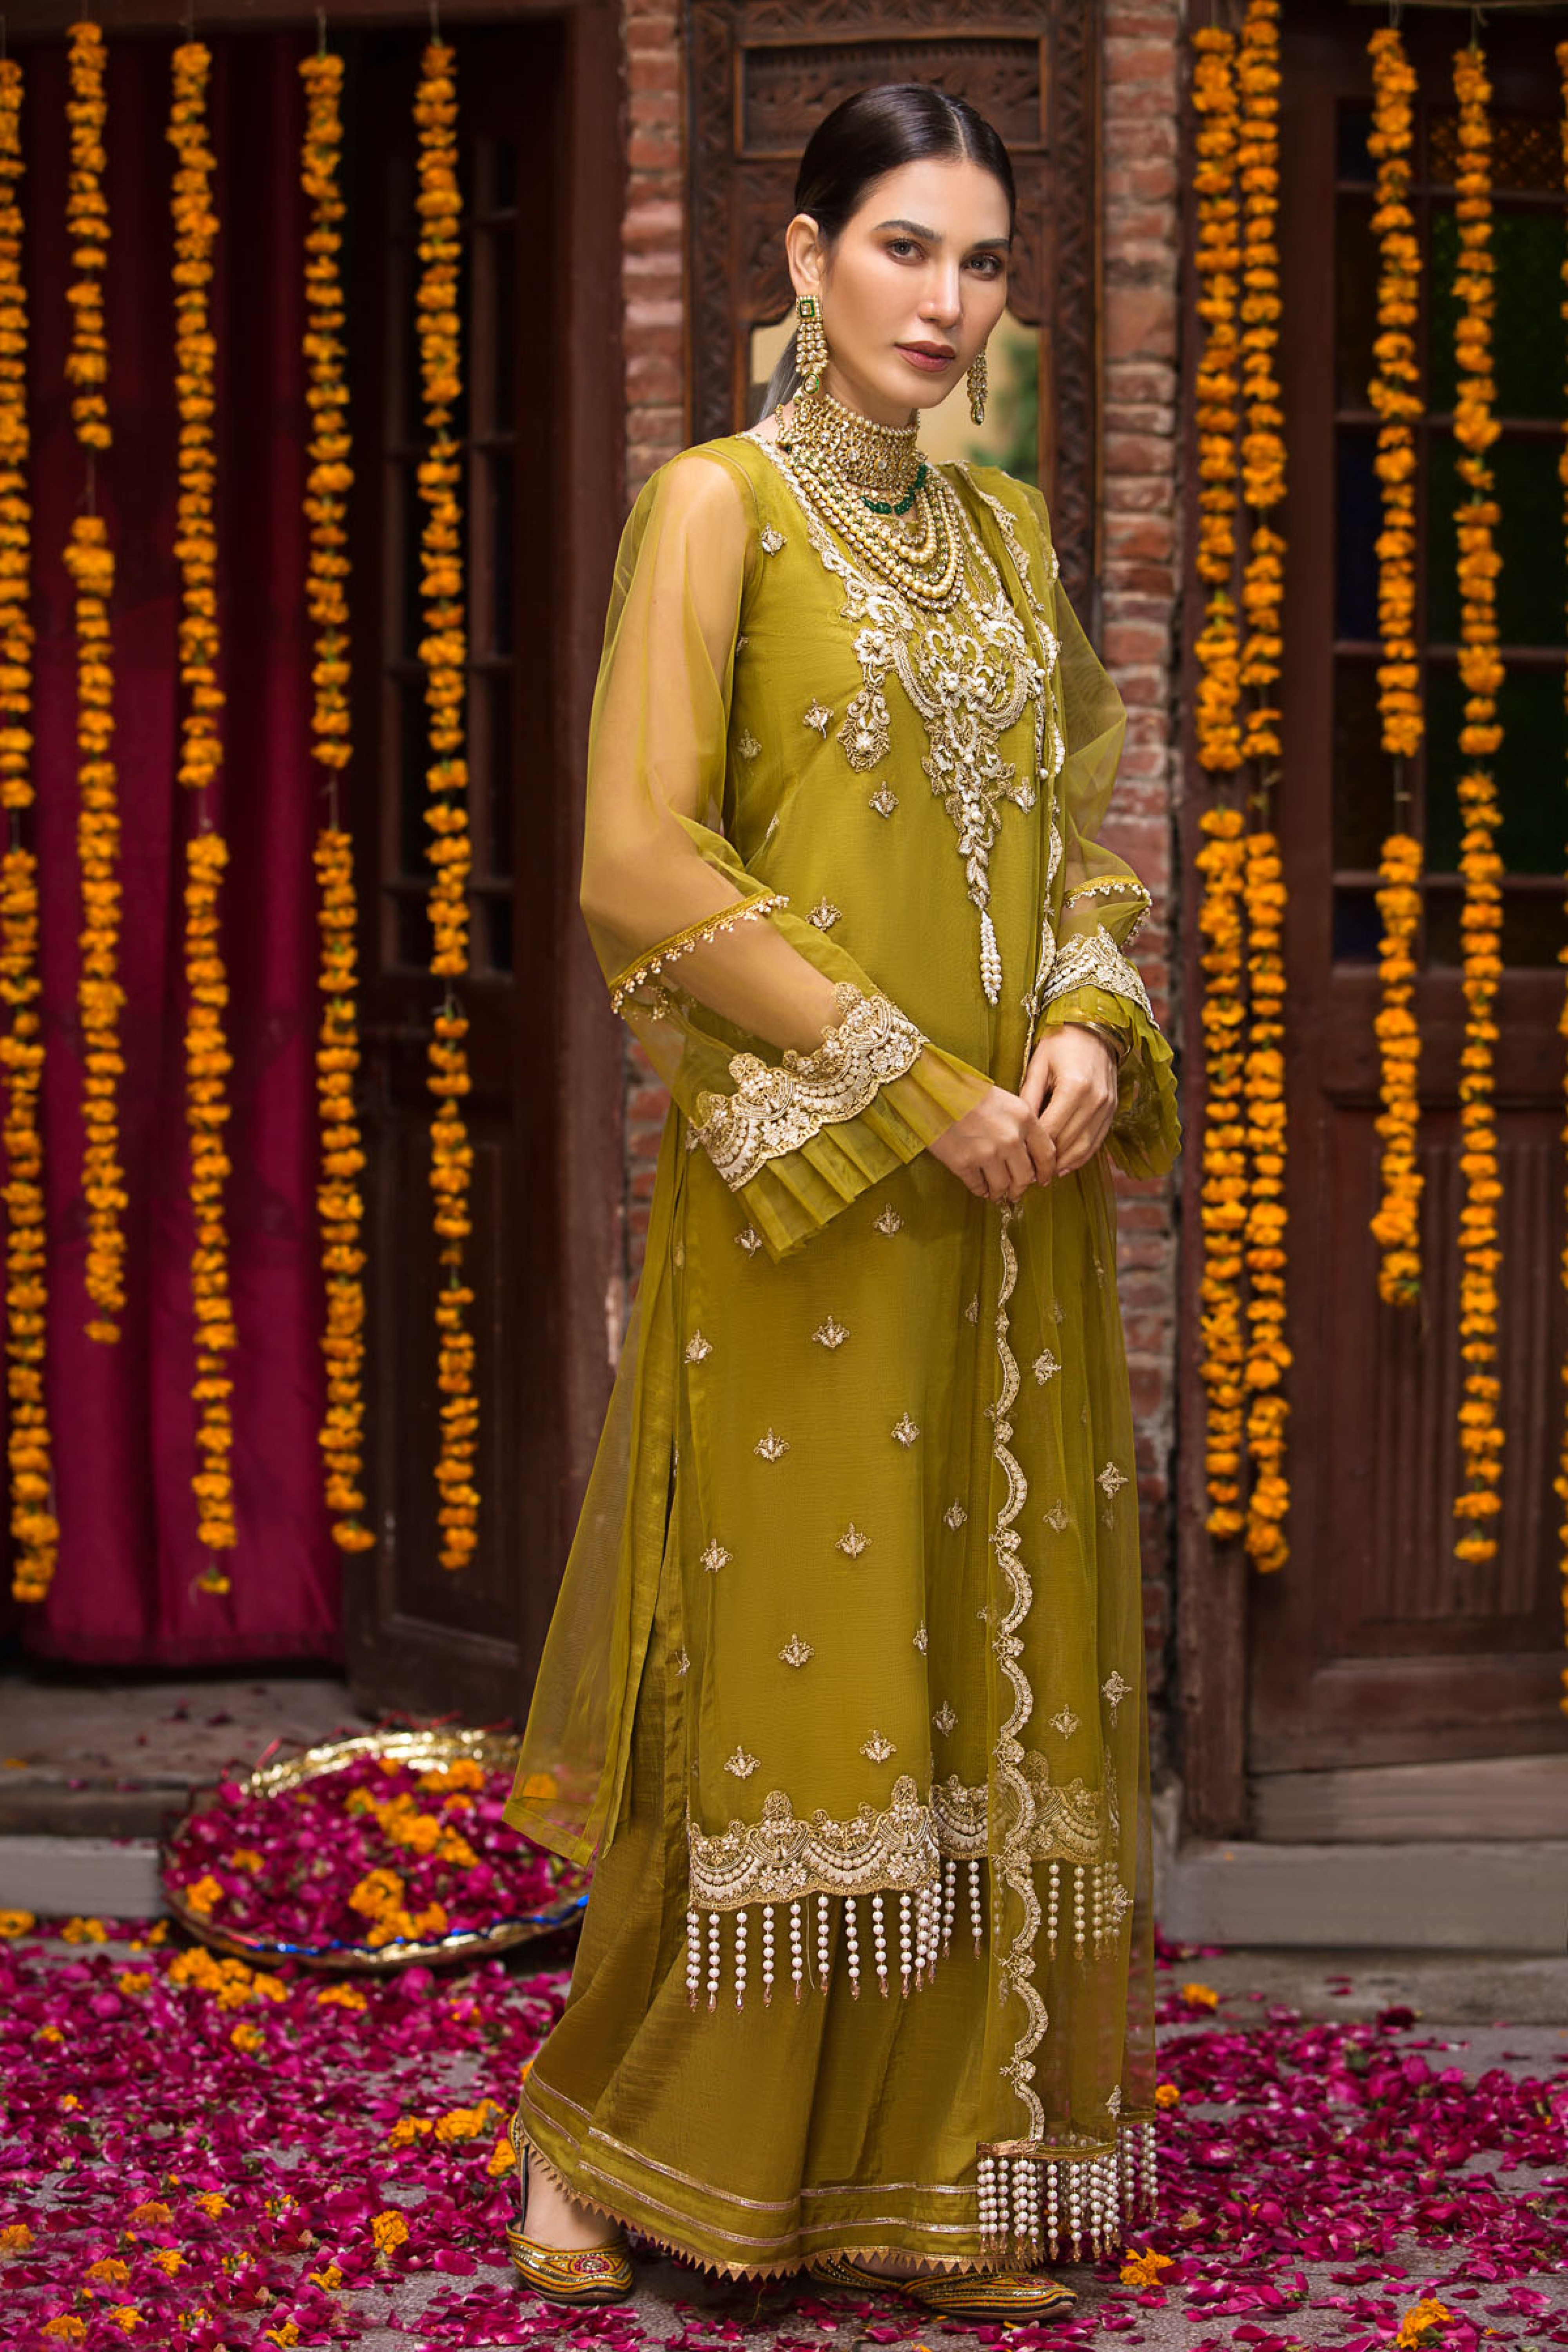 Aarzoo(Embroidered Shirt & Dupatta)